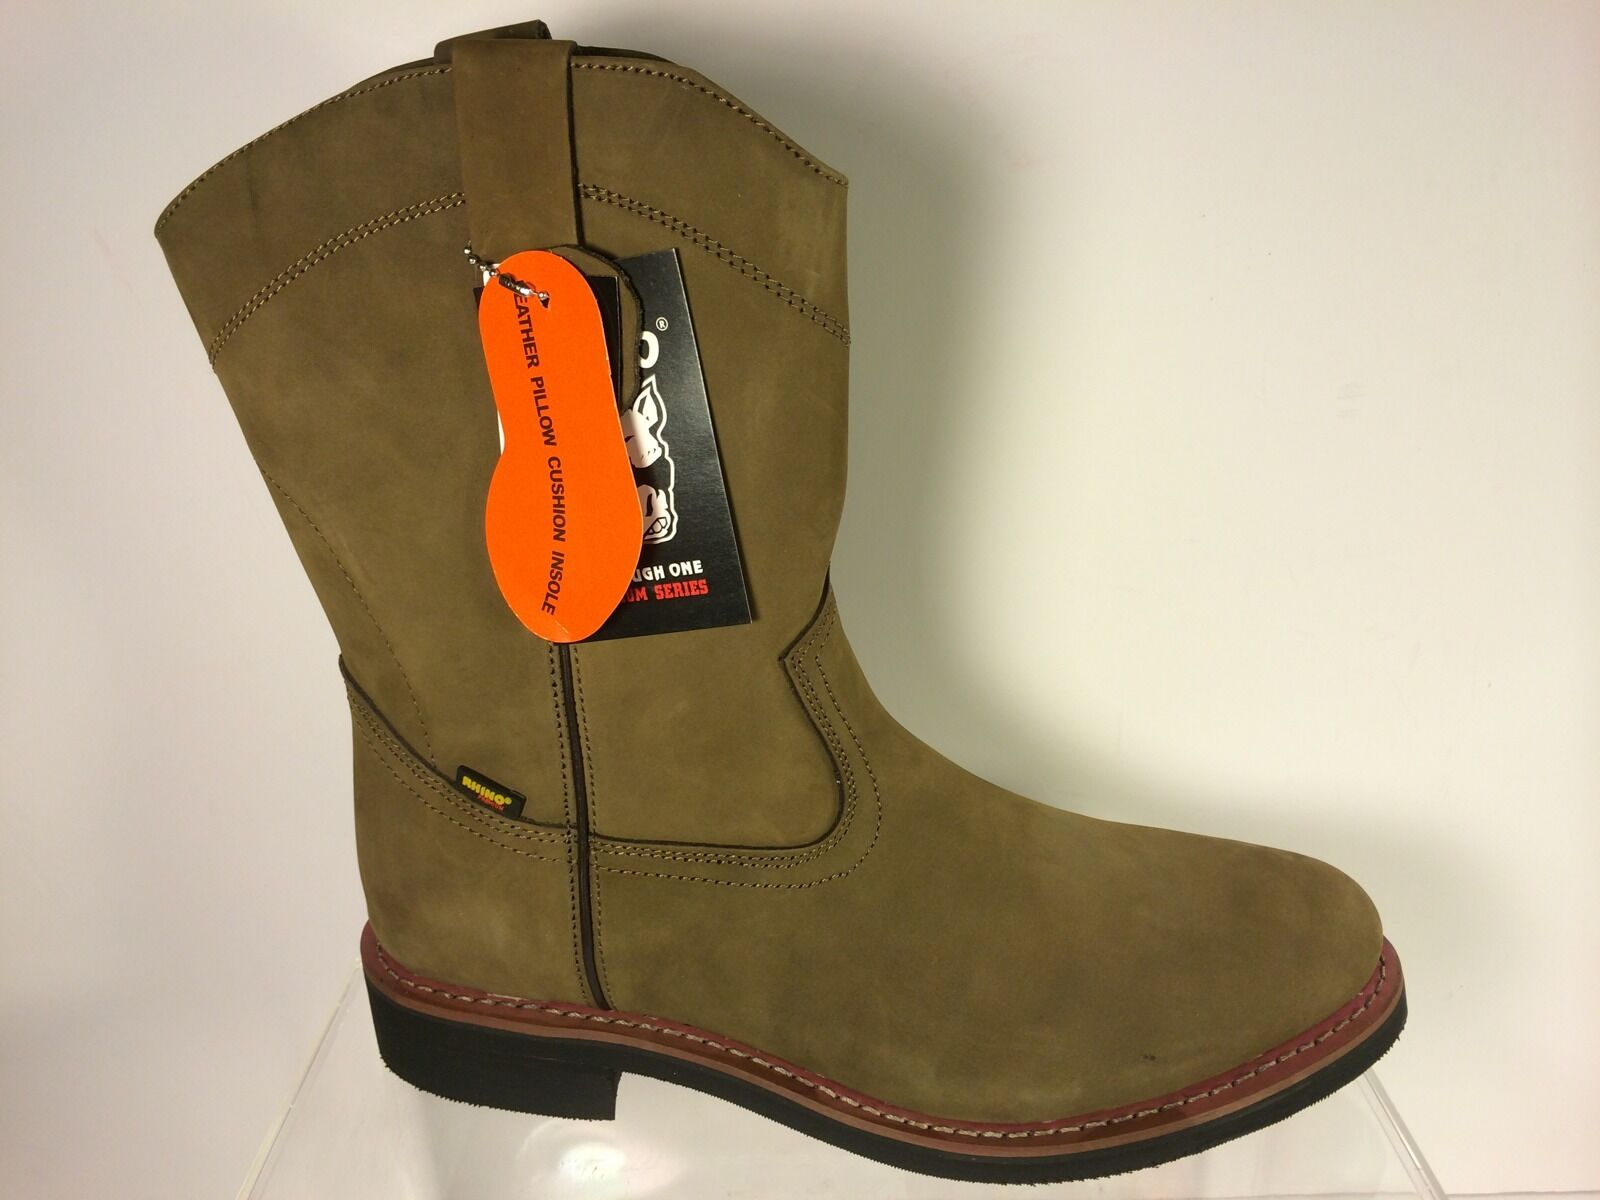 Serie de vaquero occidental Rhino Premium Wellington botas para hombre 10.5